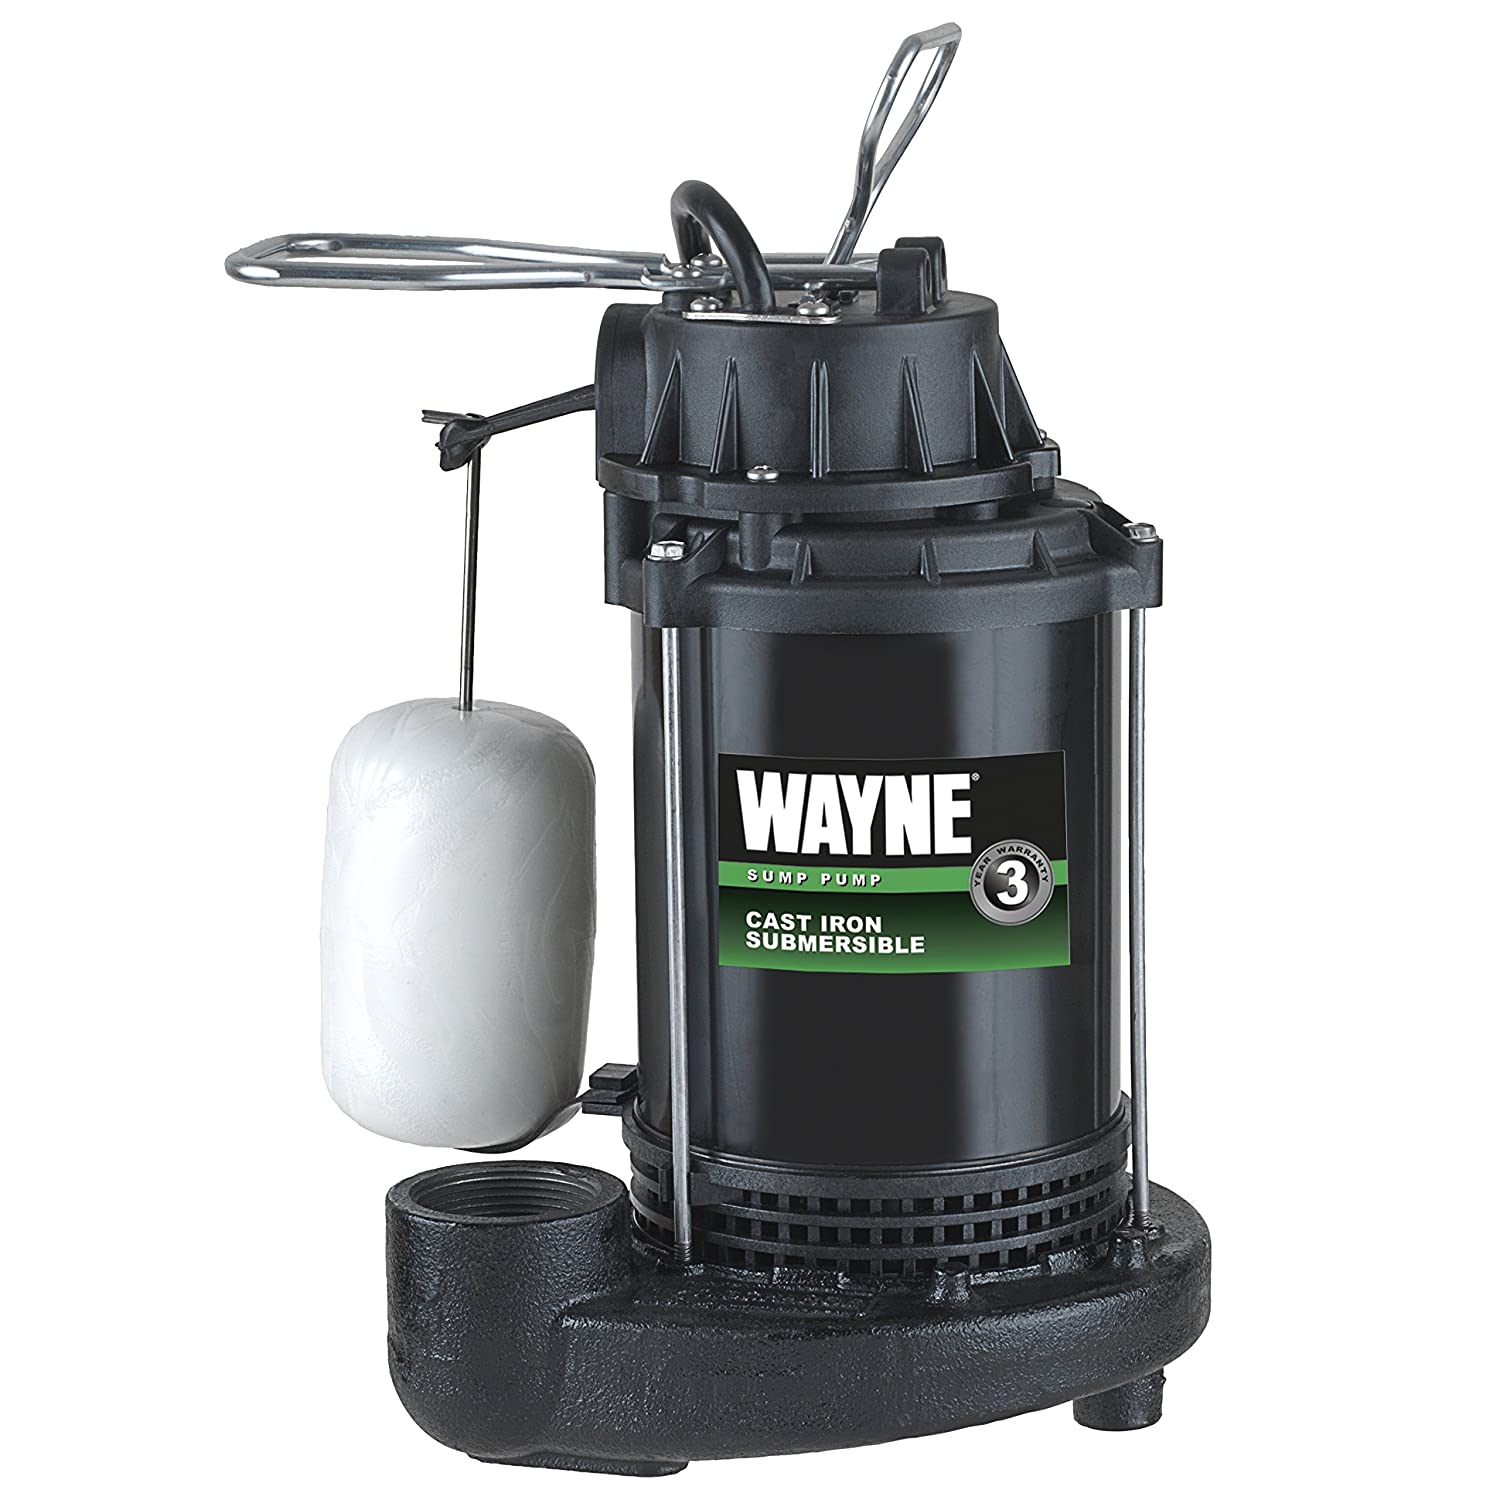 WAYNE CDU790 1/3 HP Submersible Cast Iron and Steel Sump Pump With  Integrated Vertical Float Switch - - Amazon.com